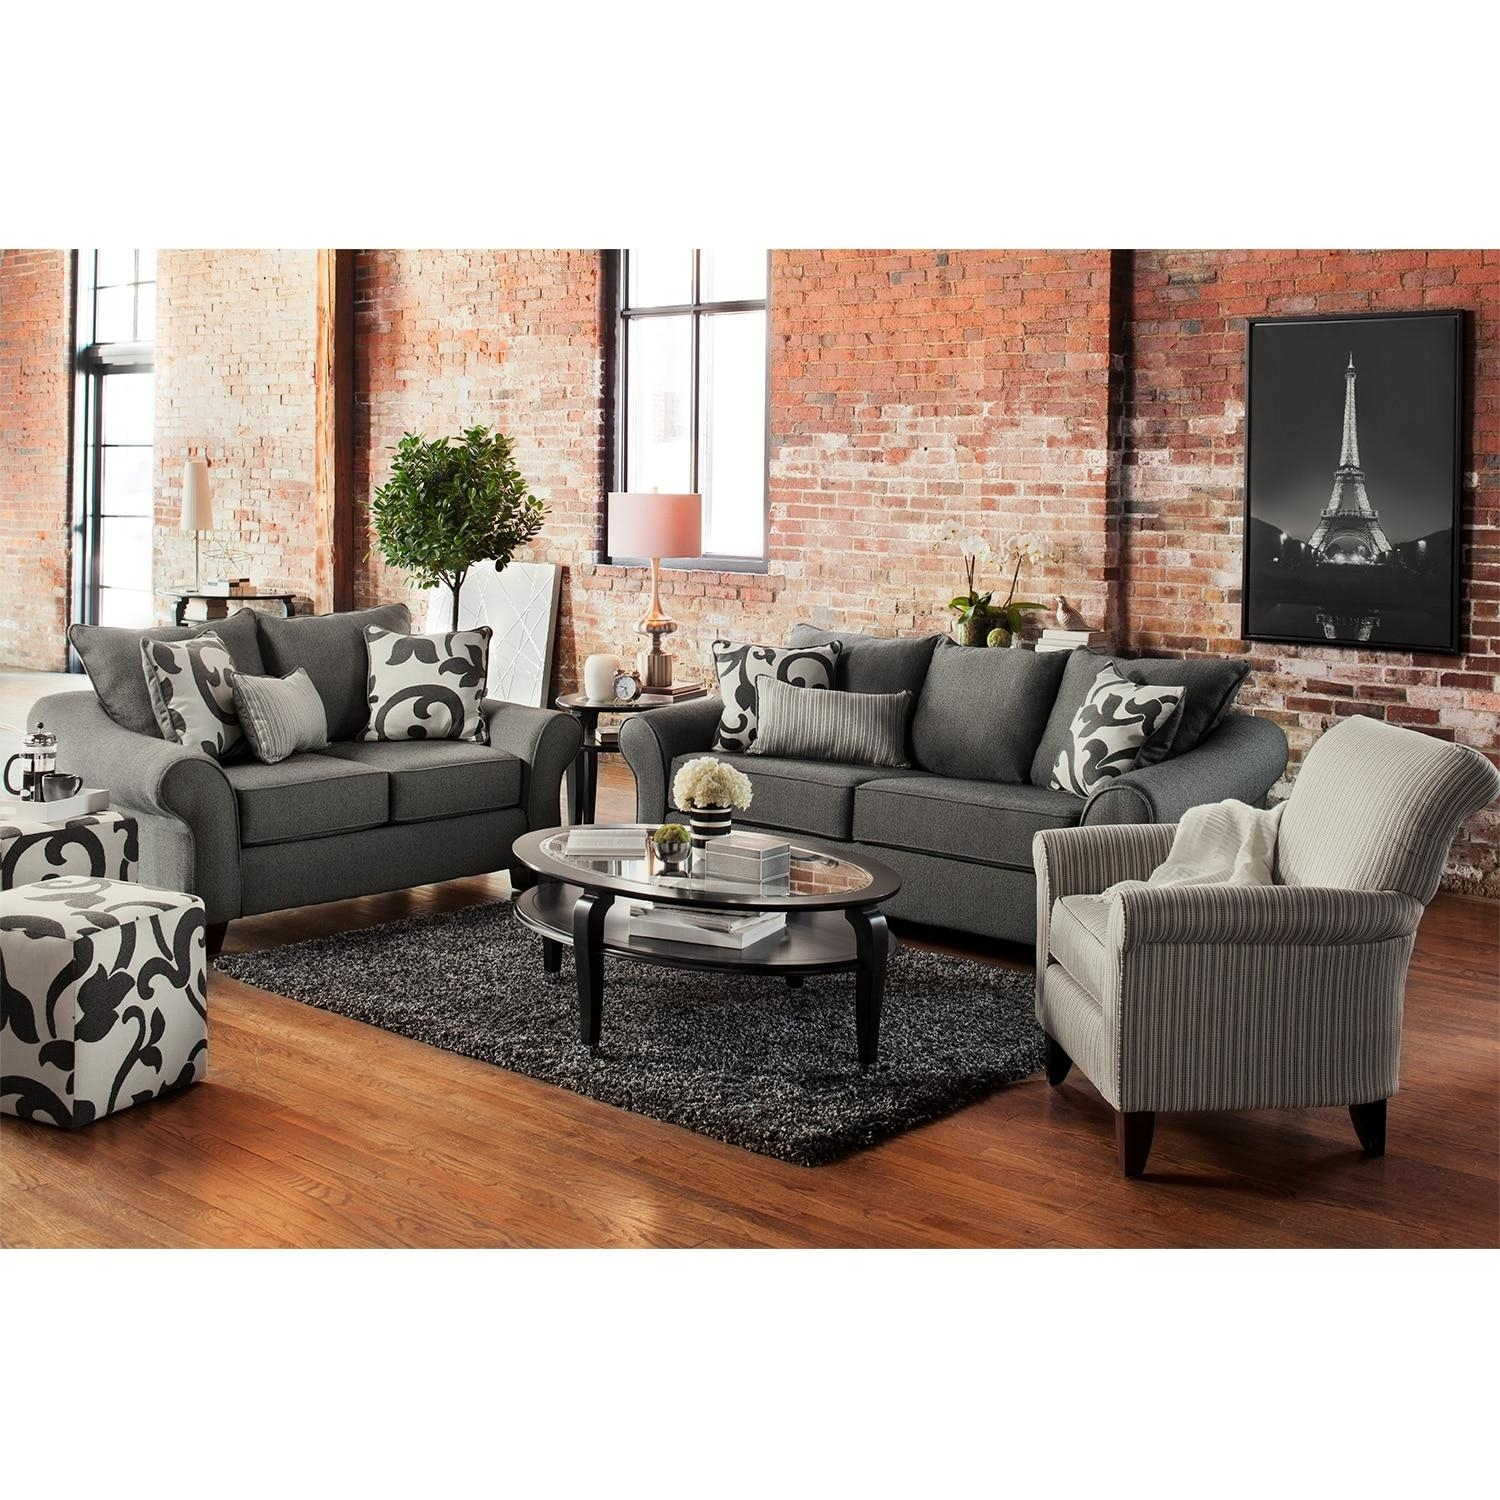 Sofa Set Grau 20 Top Sofa Loveseat And Chairs Sofa Ideas